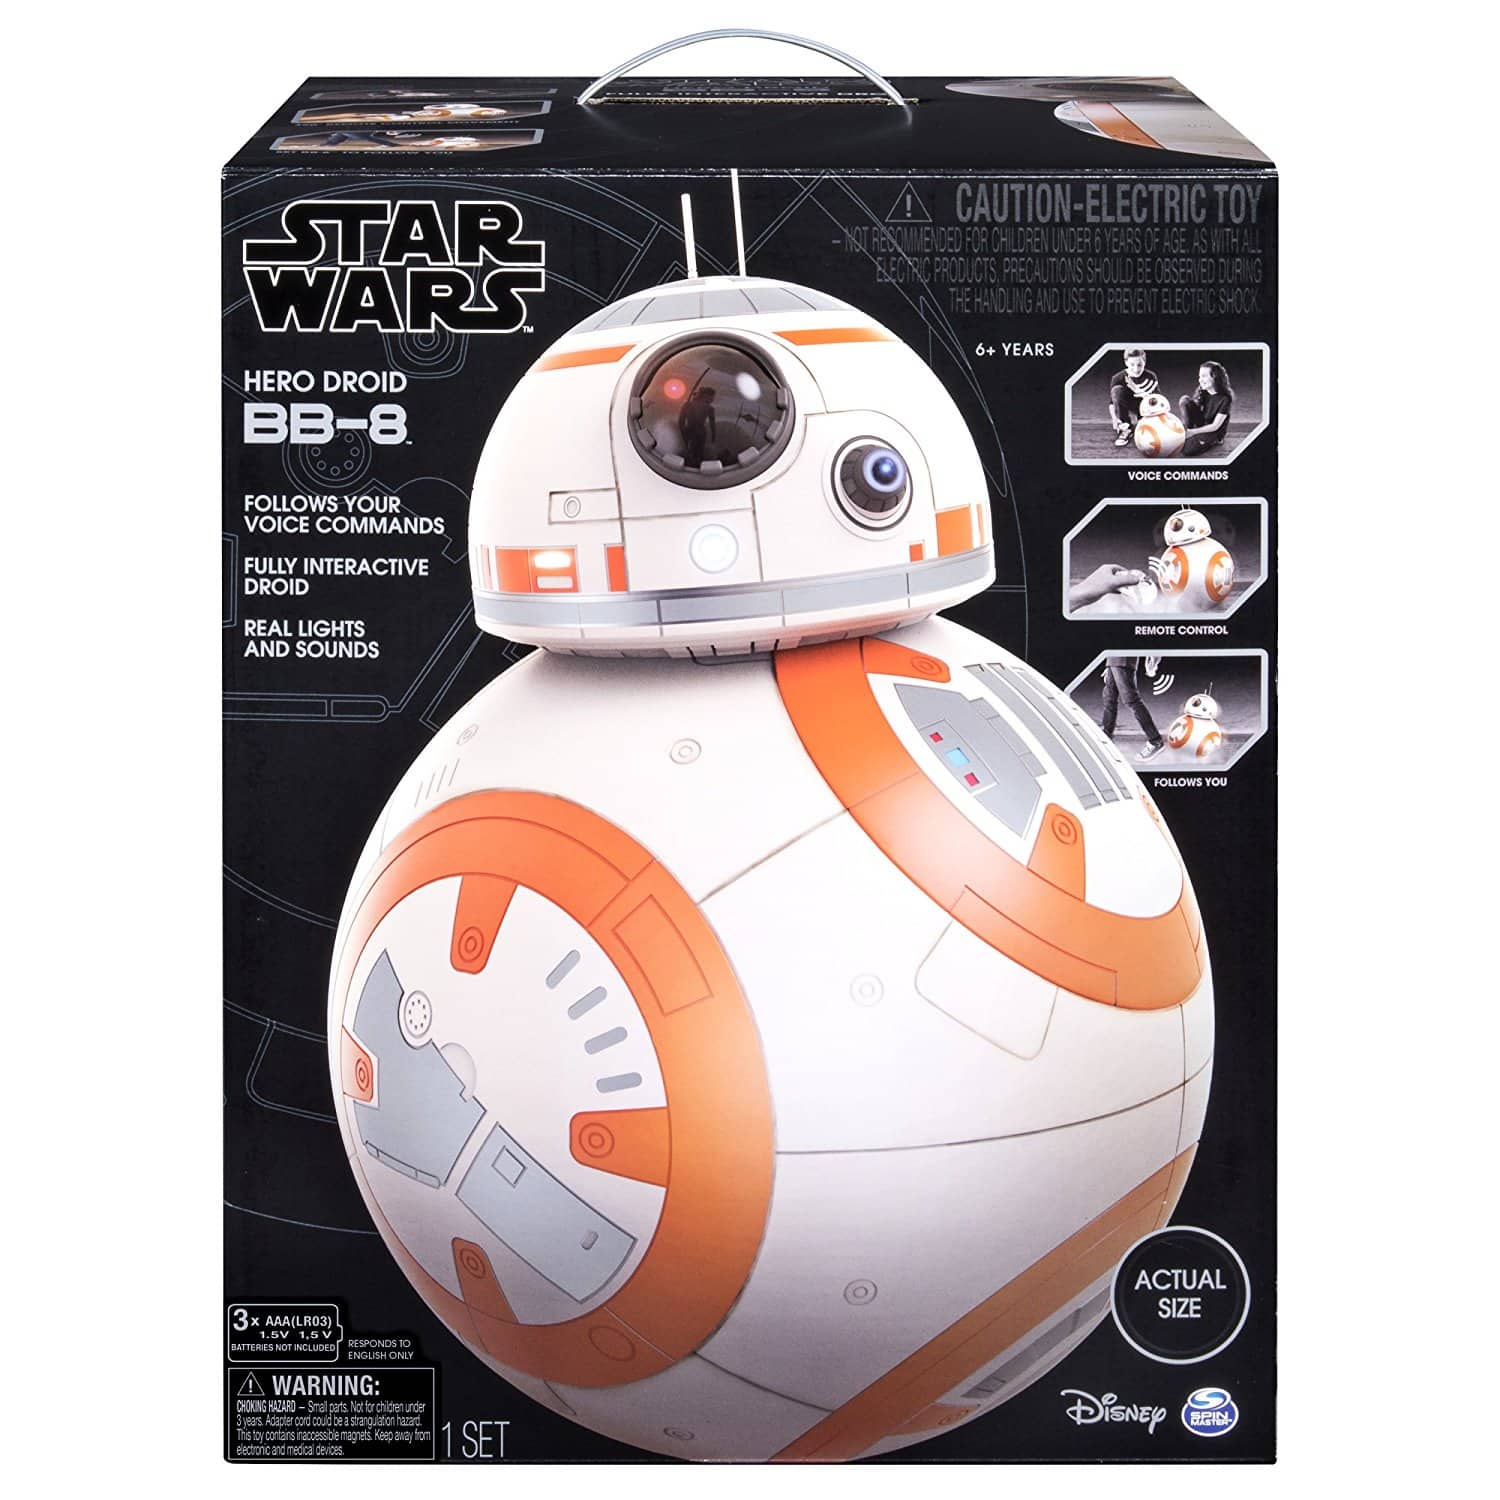 Star Wars - Hero Droid BB-8 - Fully Interactive Droid + FS $129